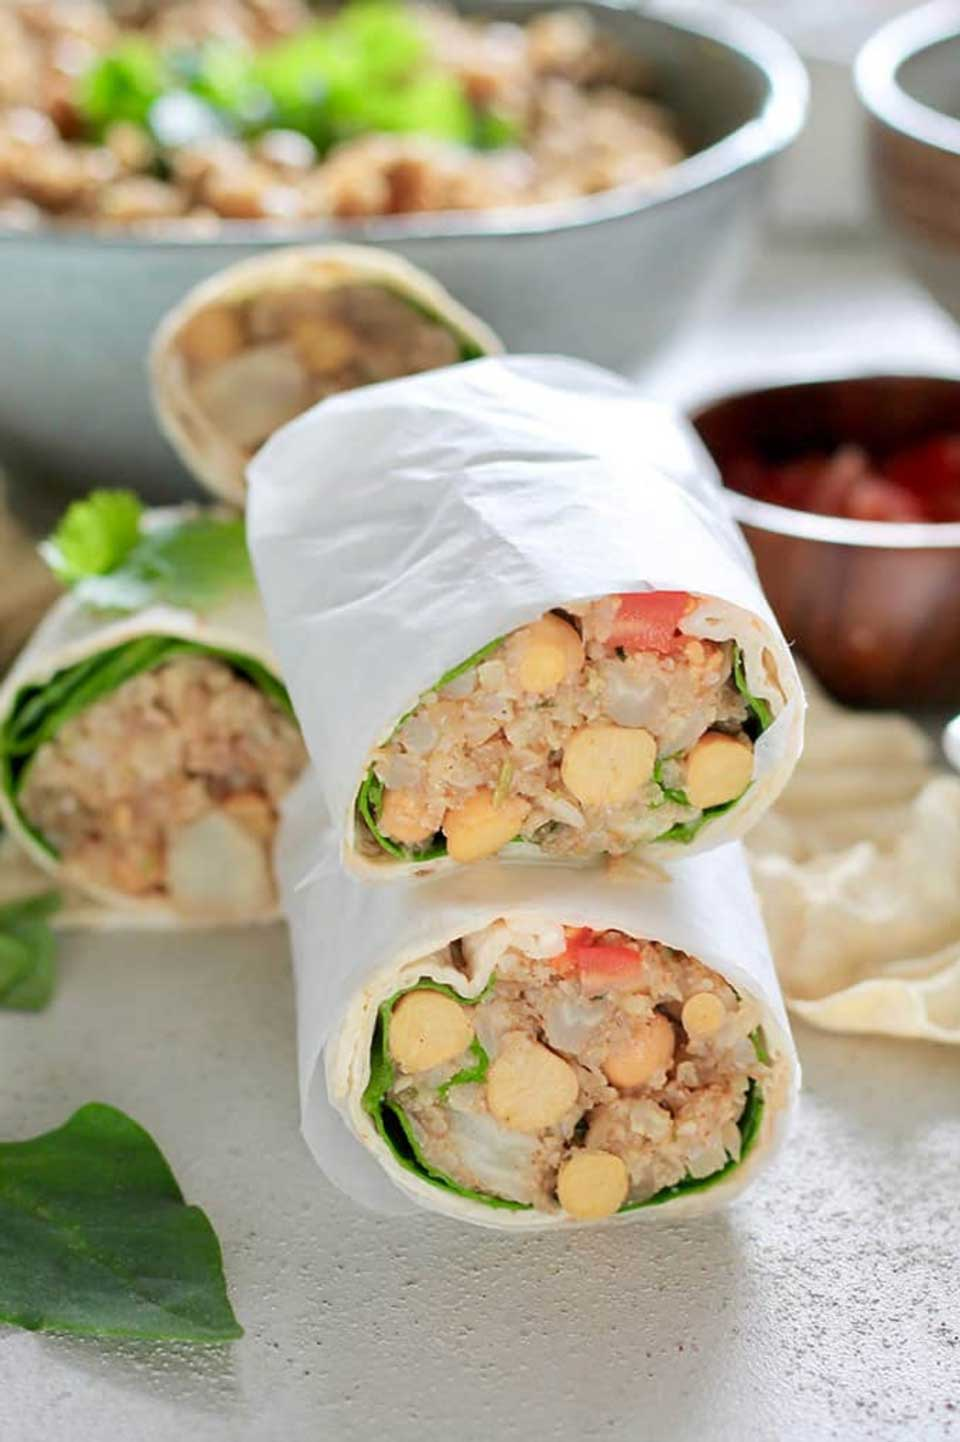 stack of two vegetarian wraps, cut open and wrapped in white deli paper